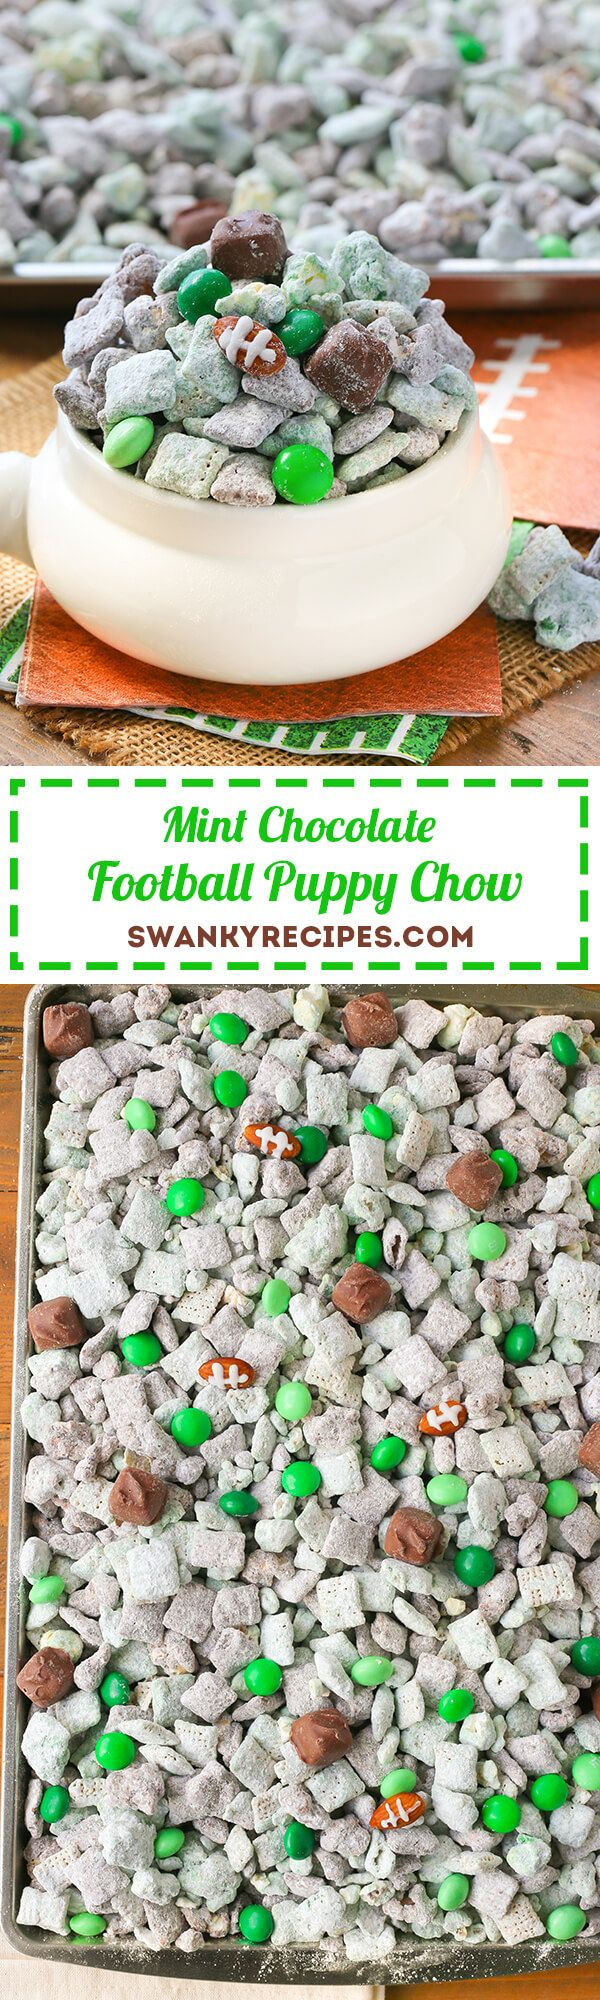 Mint Chocolate Football Puppy Chow - Kick off game day with this easy to make snack. Everyone will love this classic puppy chow with mint and chocolate. #AllStarSnackBar #ad